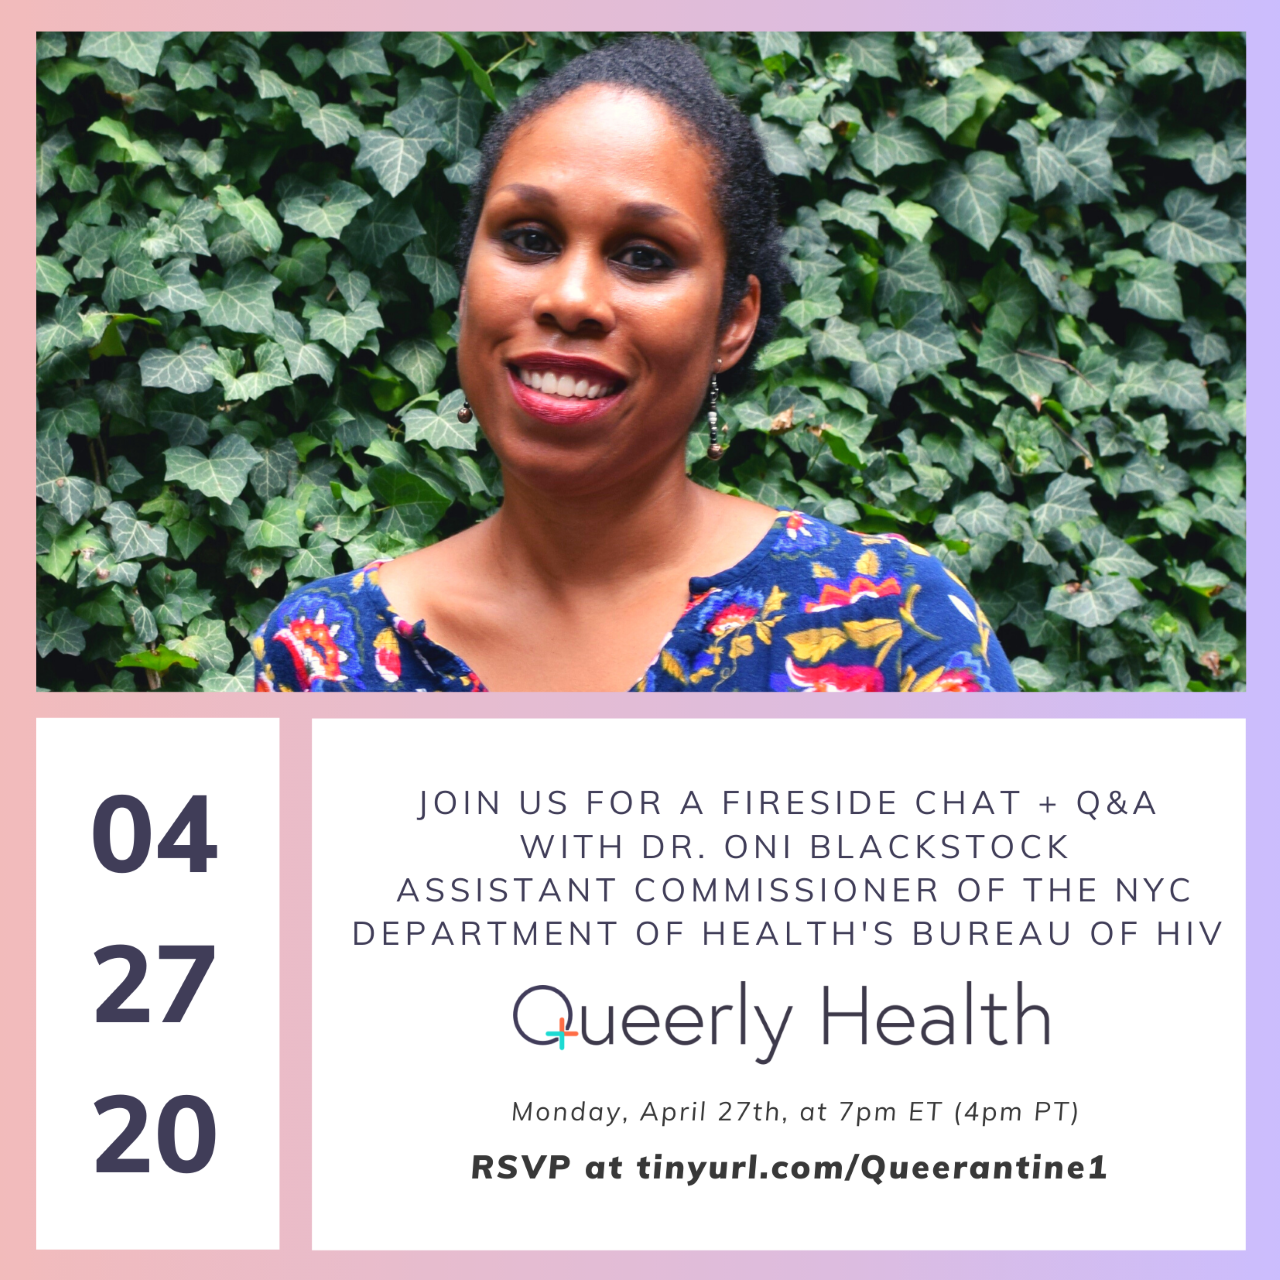 Text ID: Join us for a fireside chat + Q&A with Dr. Oni Blackstock, Assistant Commissioner of the NYC Department of Health's Bureau of HIV. Queerly Health. Monday, April 27th at 7 PM ET (4 PM PT) RSVP link above.